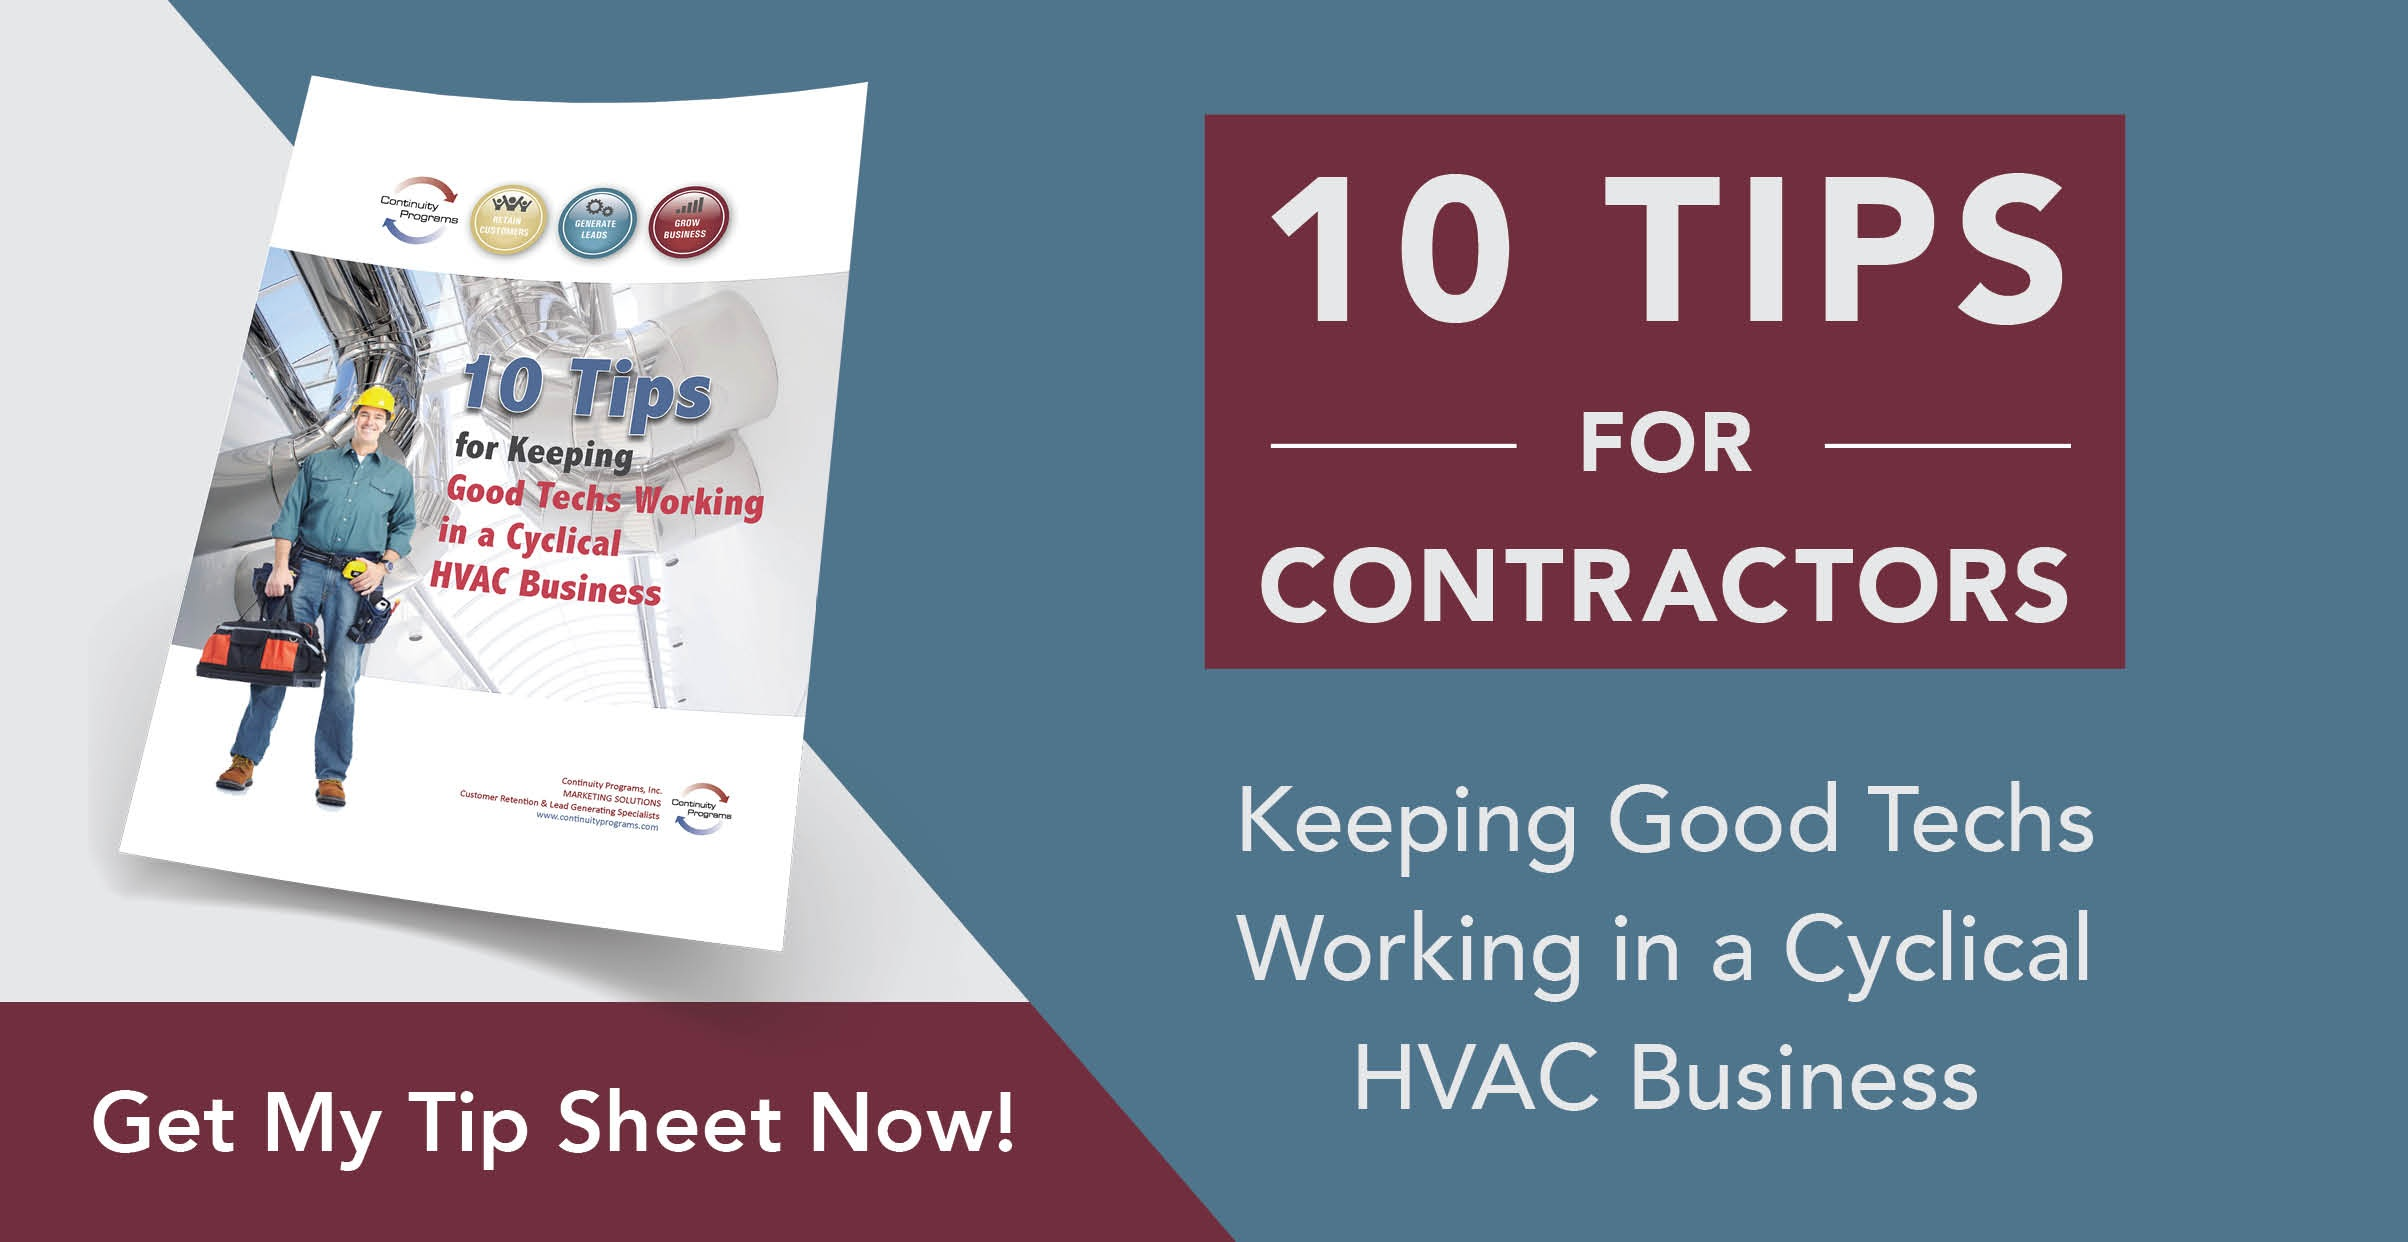 10 Tips For Contractors - Keeping Good Techs Working in a Cyclical HVAC Business